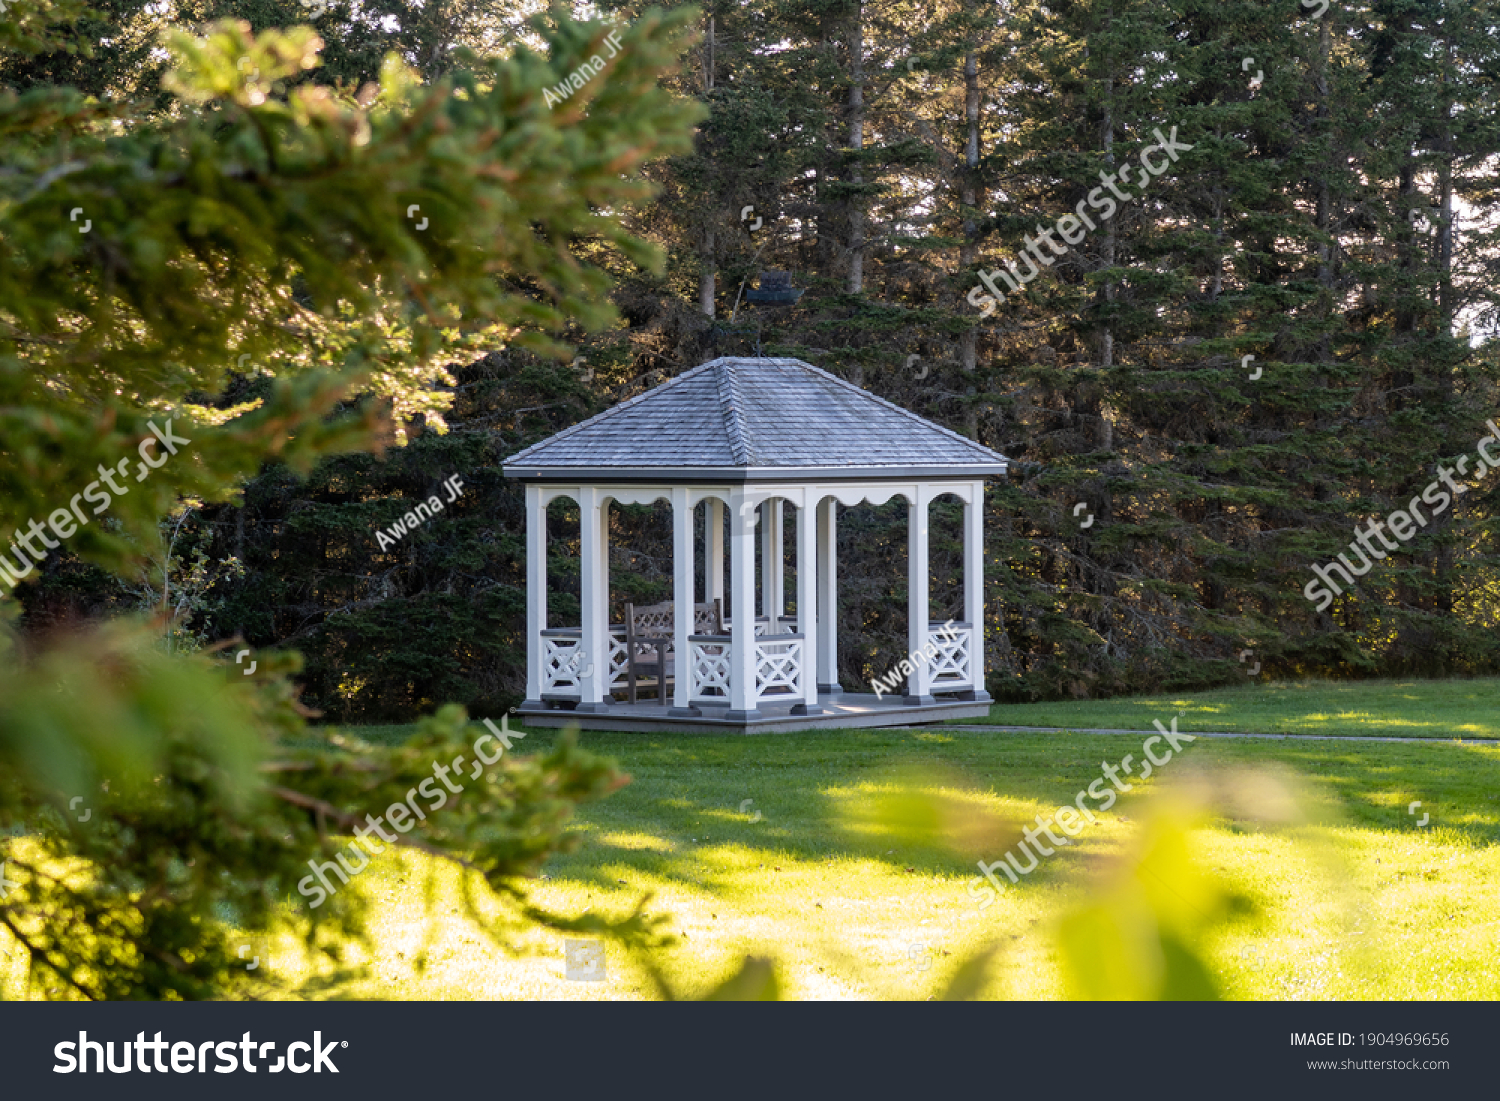 stock-photo-view-of-a-garden-kiosk-in-th